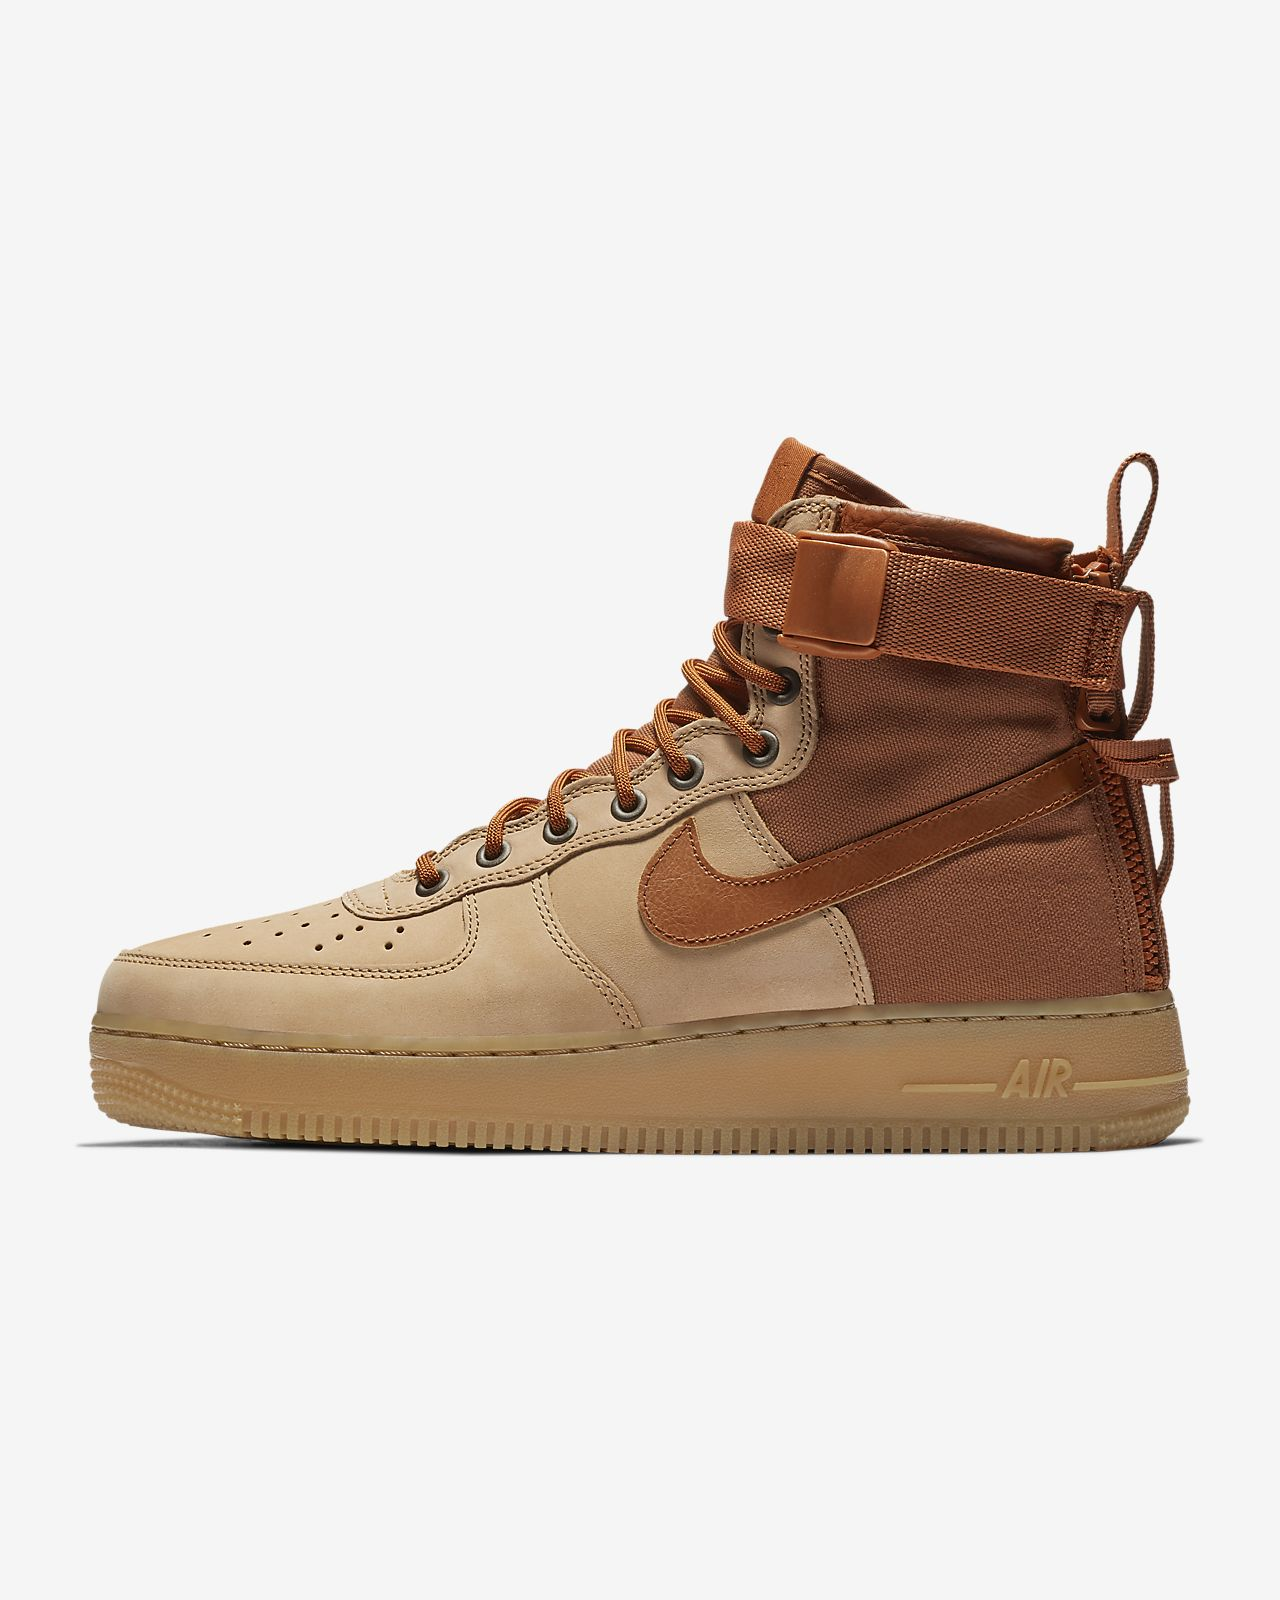 reputable site 8bf99 fd995 ... Calzado para hombre Nike SF Air Force 1 Mid Premium